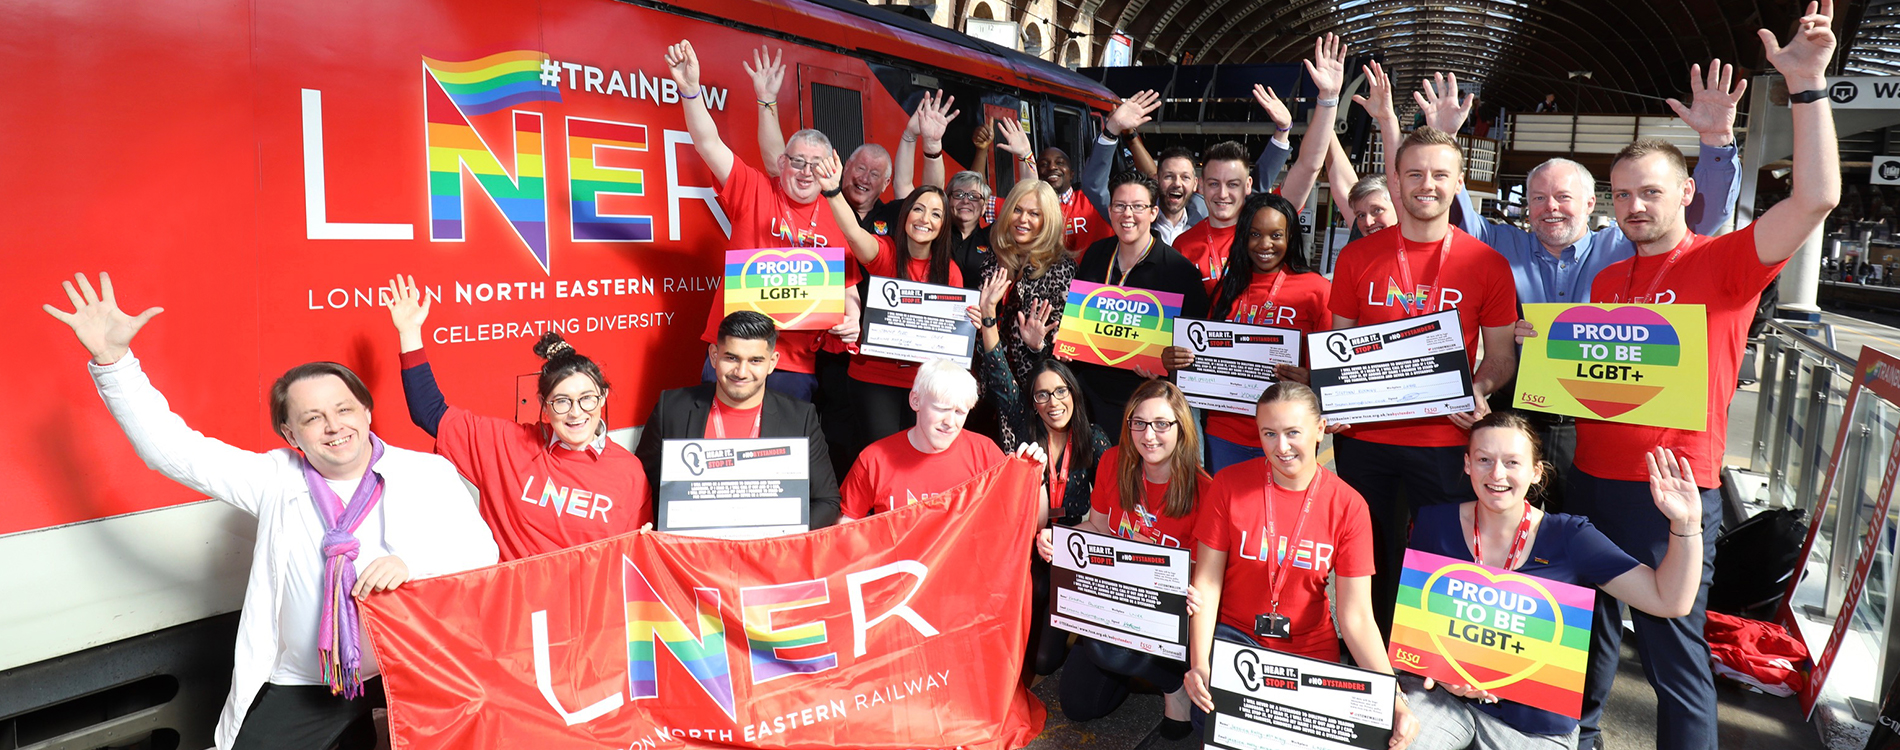 York Pride join LNER to celebrate Pride!